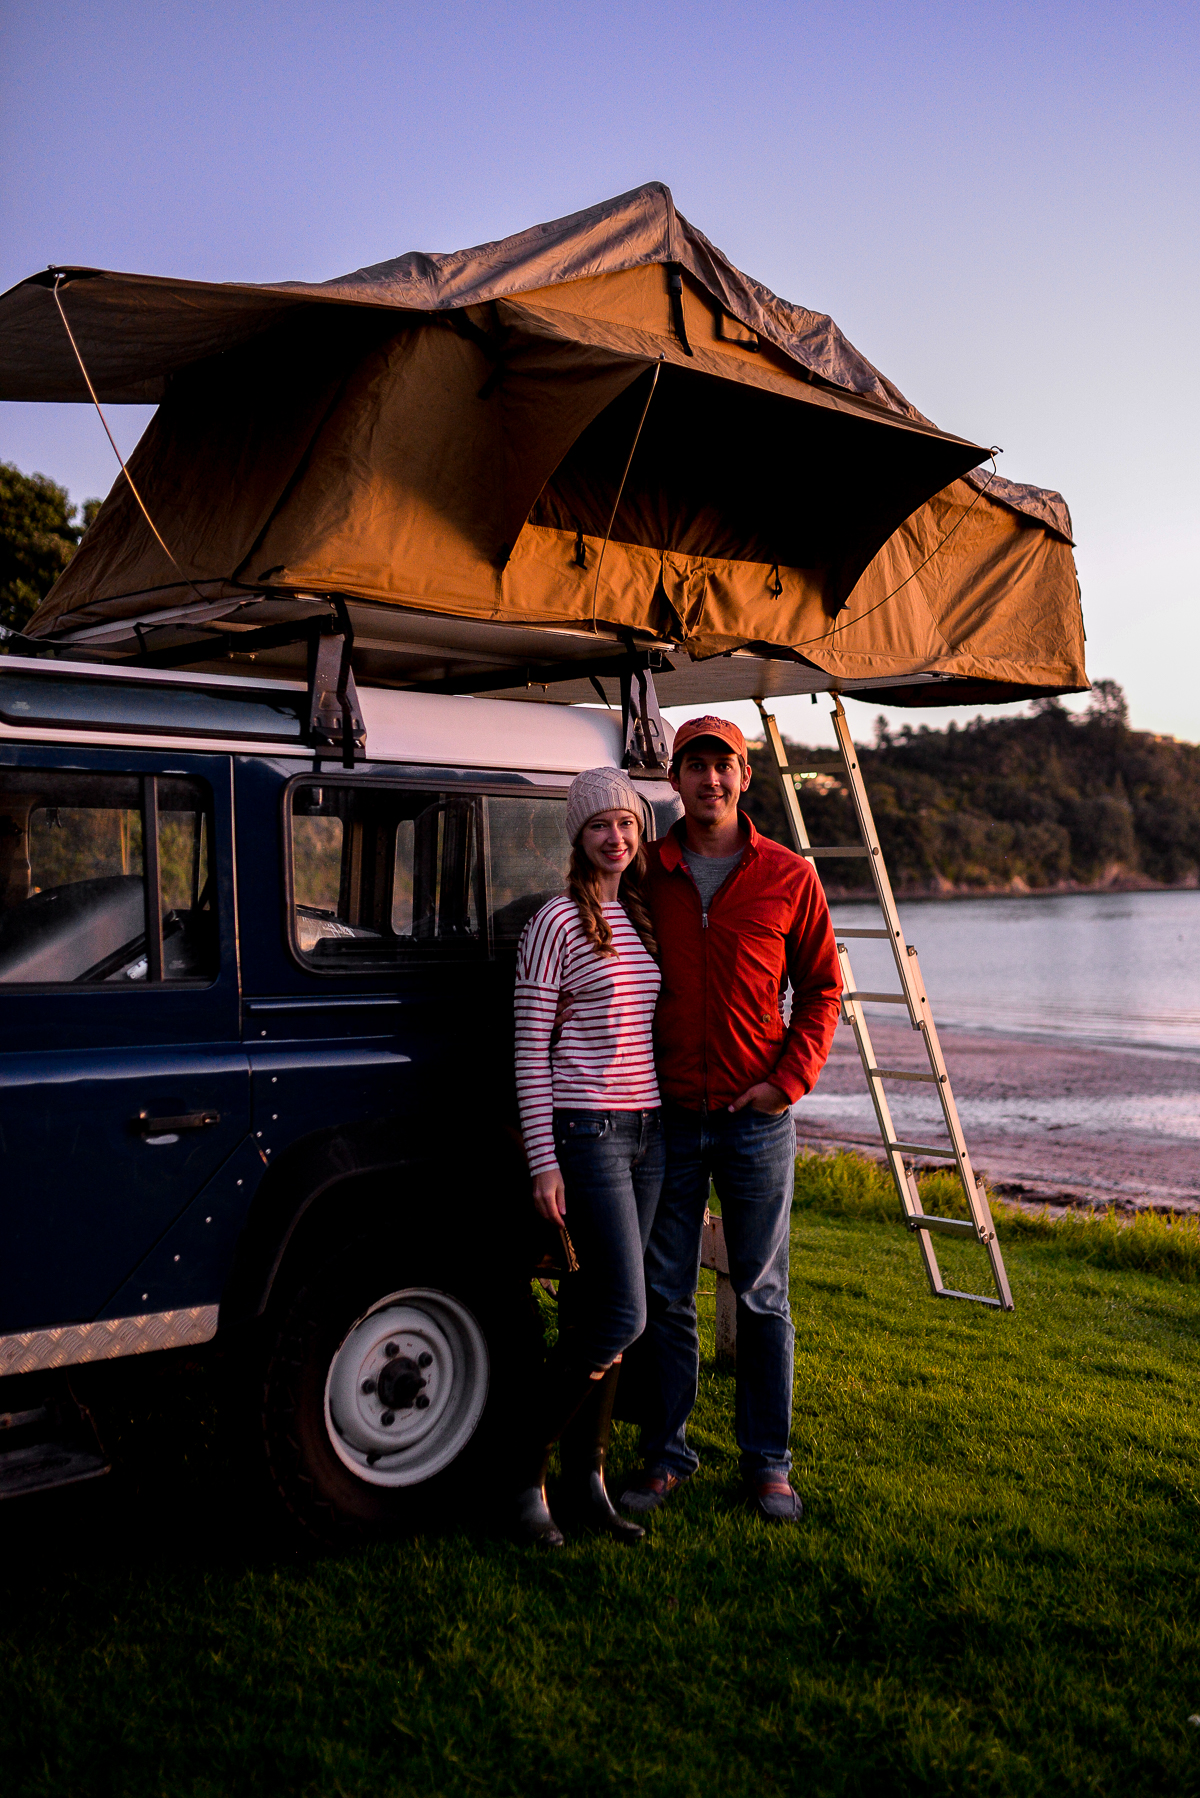 Stacie Flinner Land Rover Camping New Zealand-18.jpg